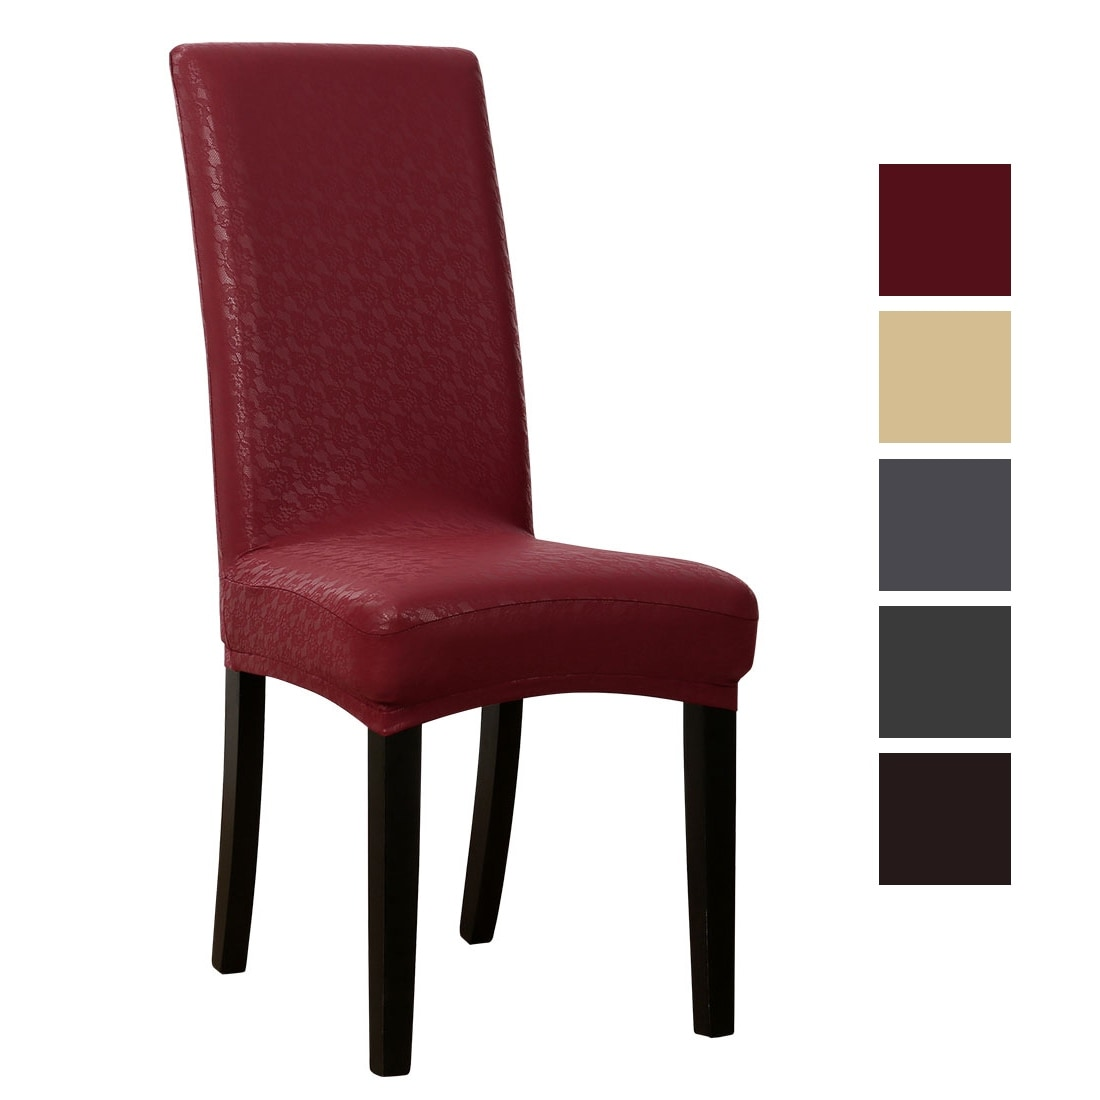 Amazing Buy Faux Leather Chair Covers Slipcovers Online At Machost Co Dining Chair Design Ideas Machostcouk